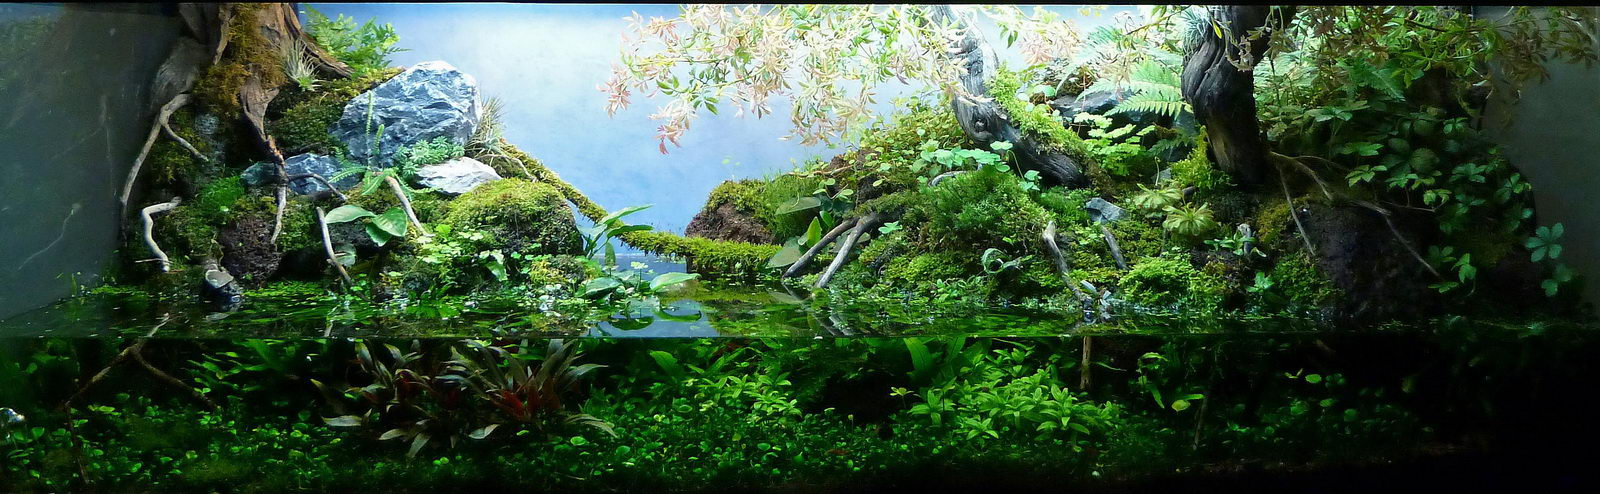 Andreas Ruppert and Aquascaping - Aqua Rebell 10 Gallon Paludarium